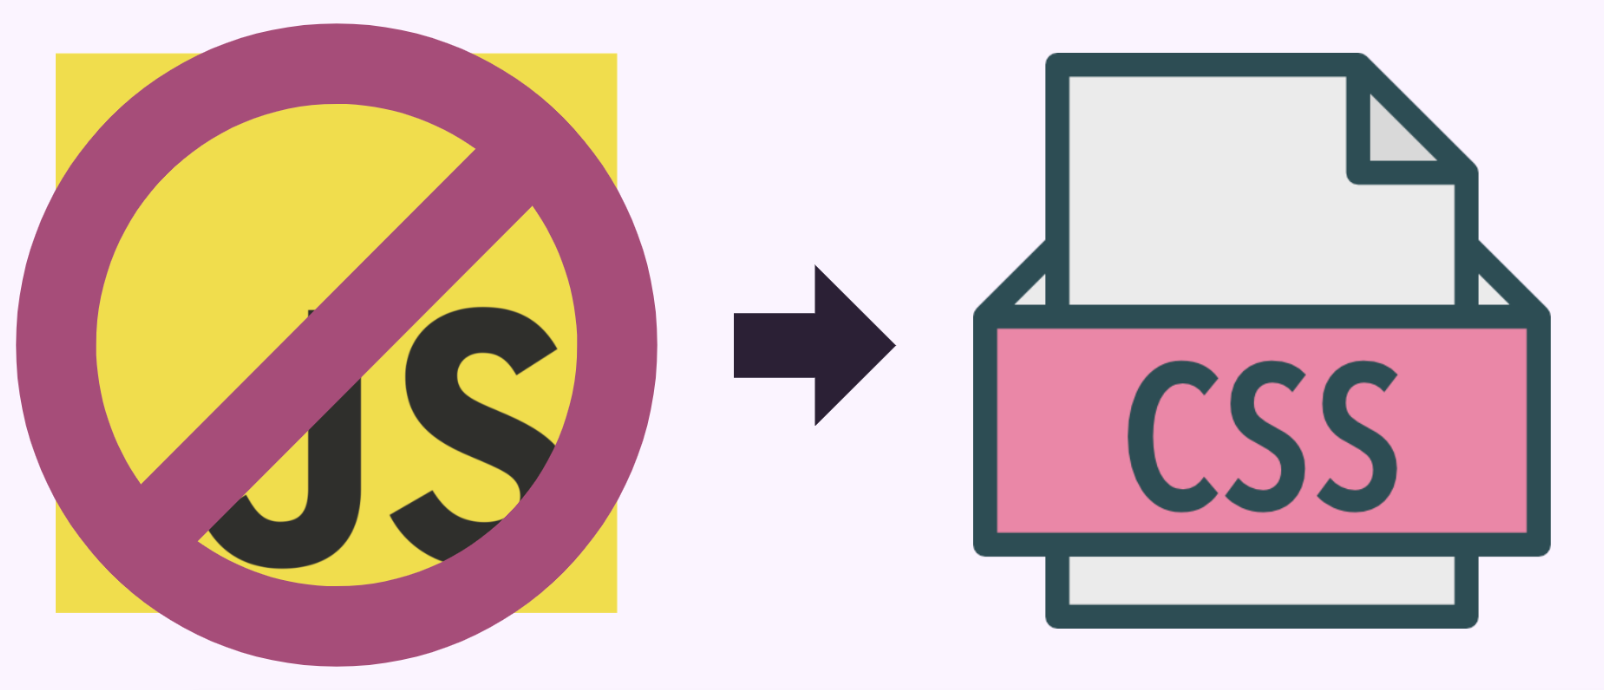 crossed out JavaScript icon transitioning to CSS